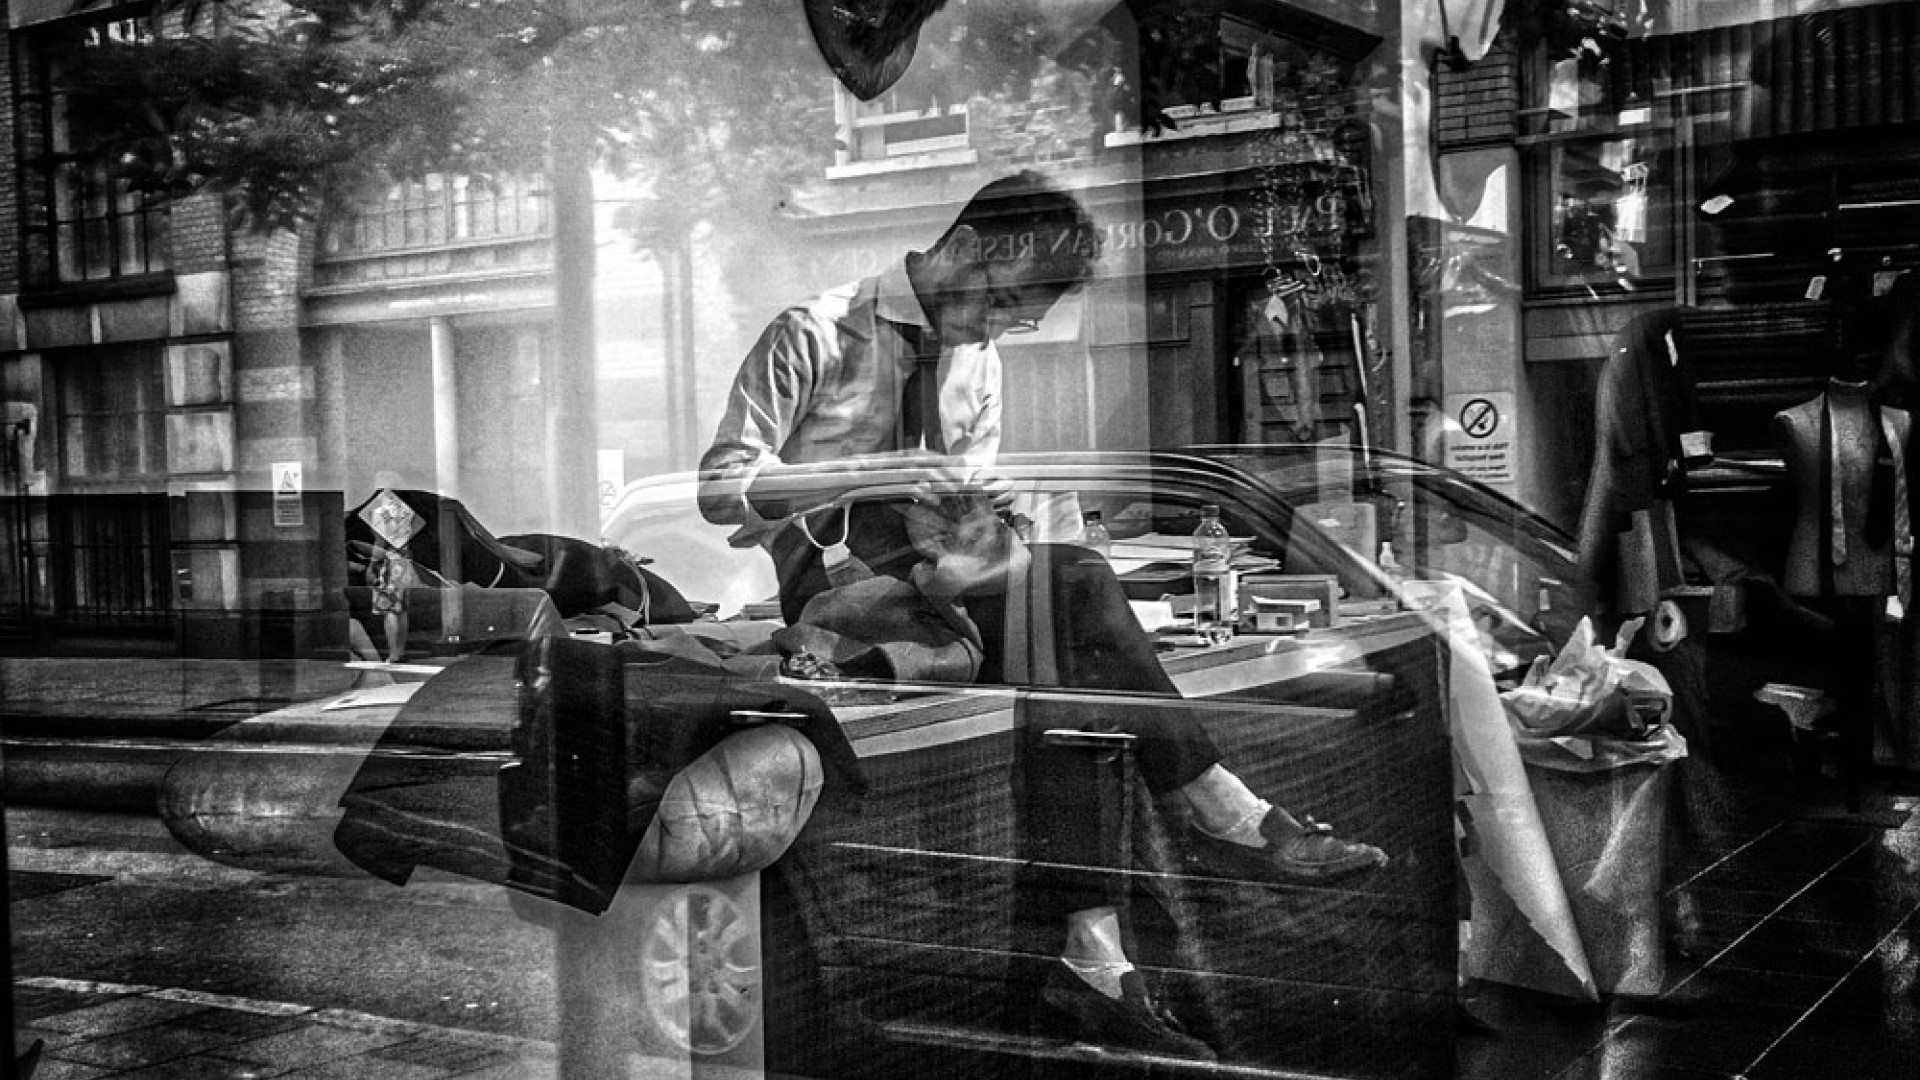 Reflections in the window of a tailor shop on Lambs Conduit Street